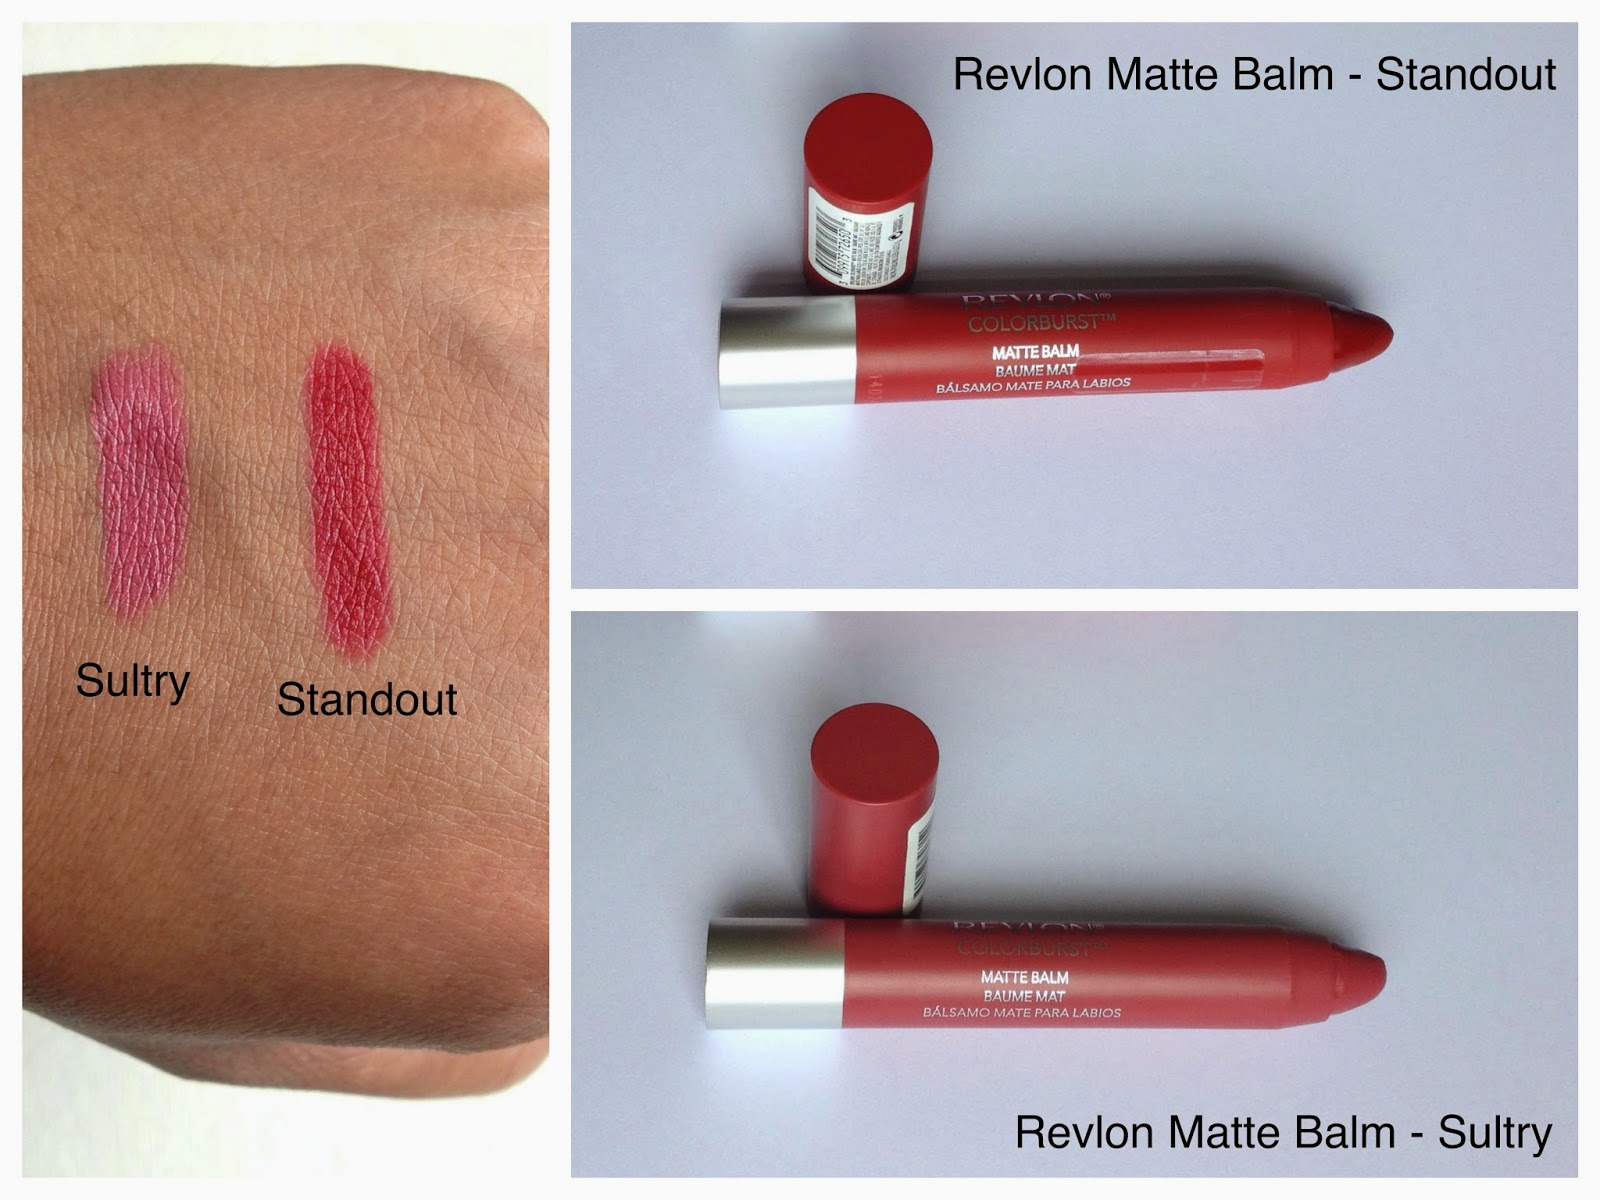 Sensitive Beauty Blog Revlon Colorburst Matte Balm Swatched Sultry And Standout On Dark Skin Woc